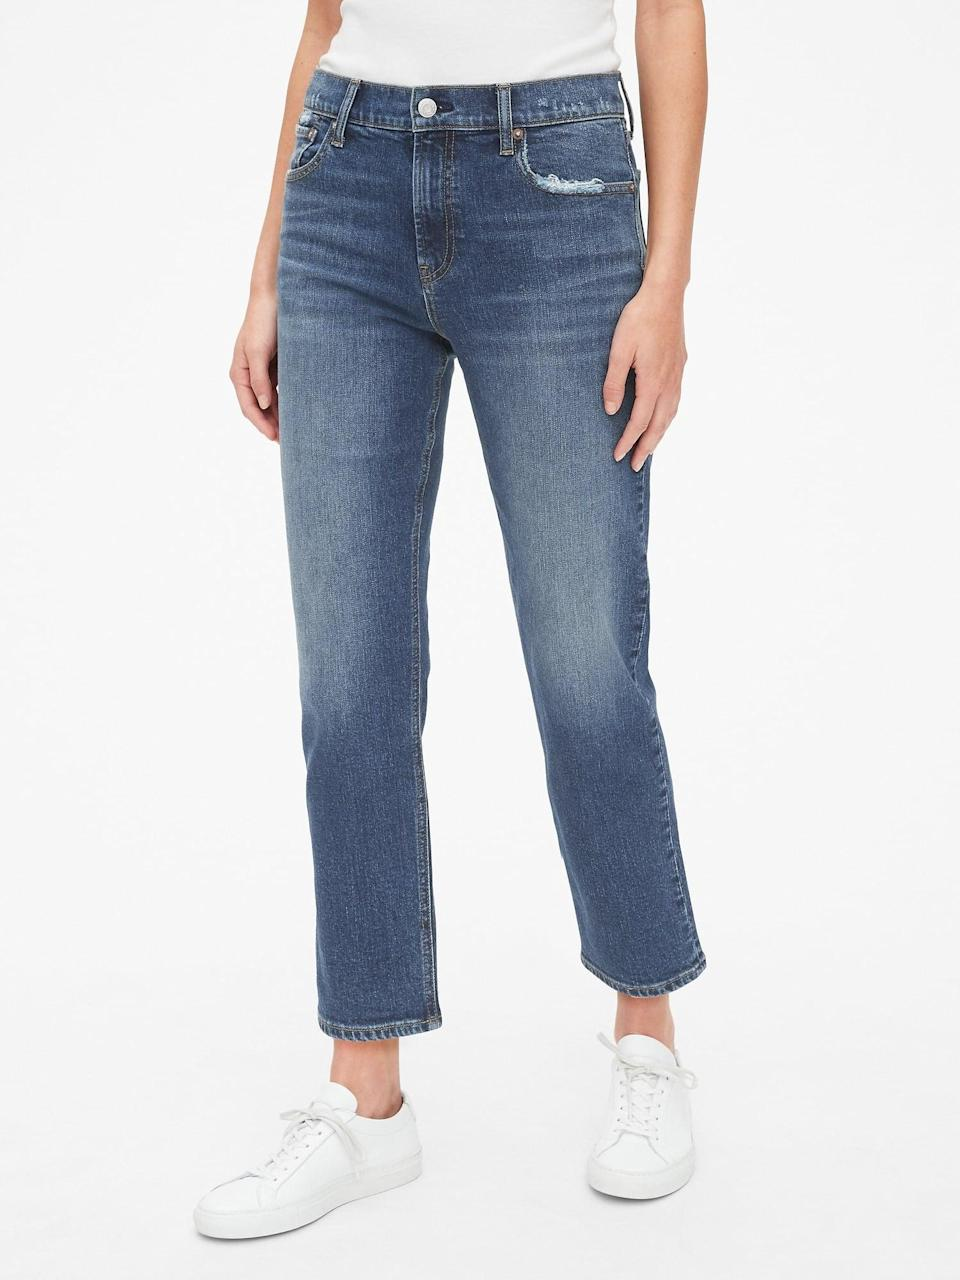 <p>These <span>Gap High Rise Cheeky Straight Jeans</span> ($70) have minimal stretch but look so good with sneakers or sandals.</p>